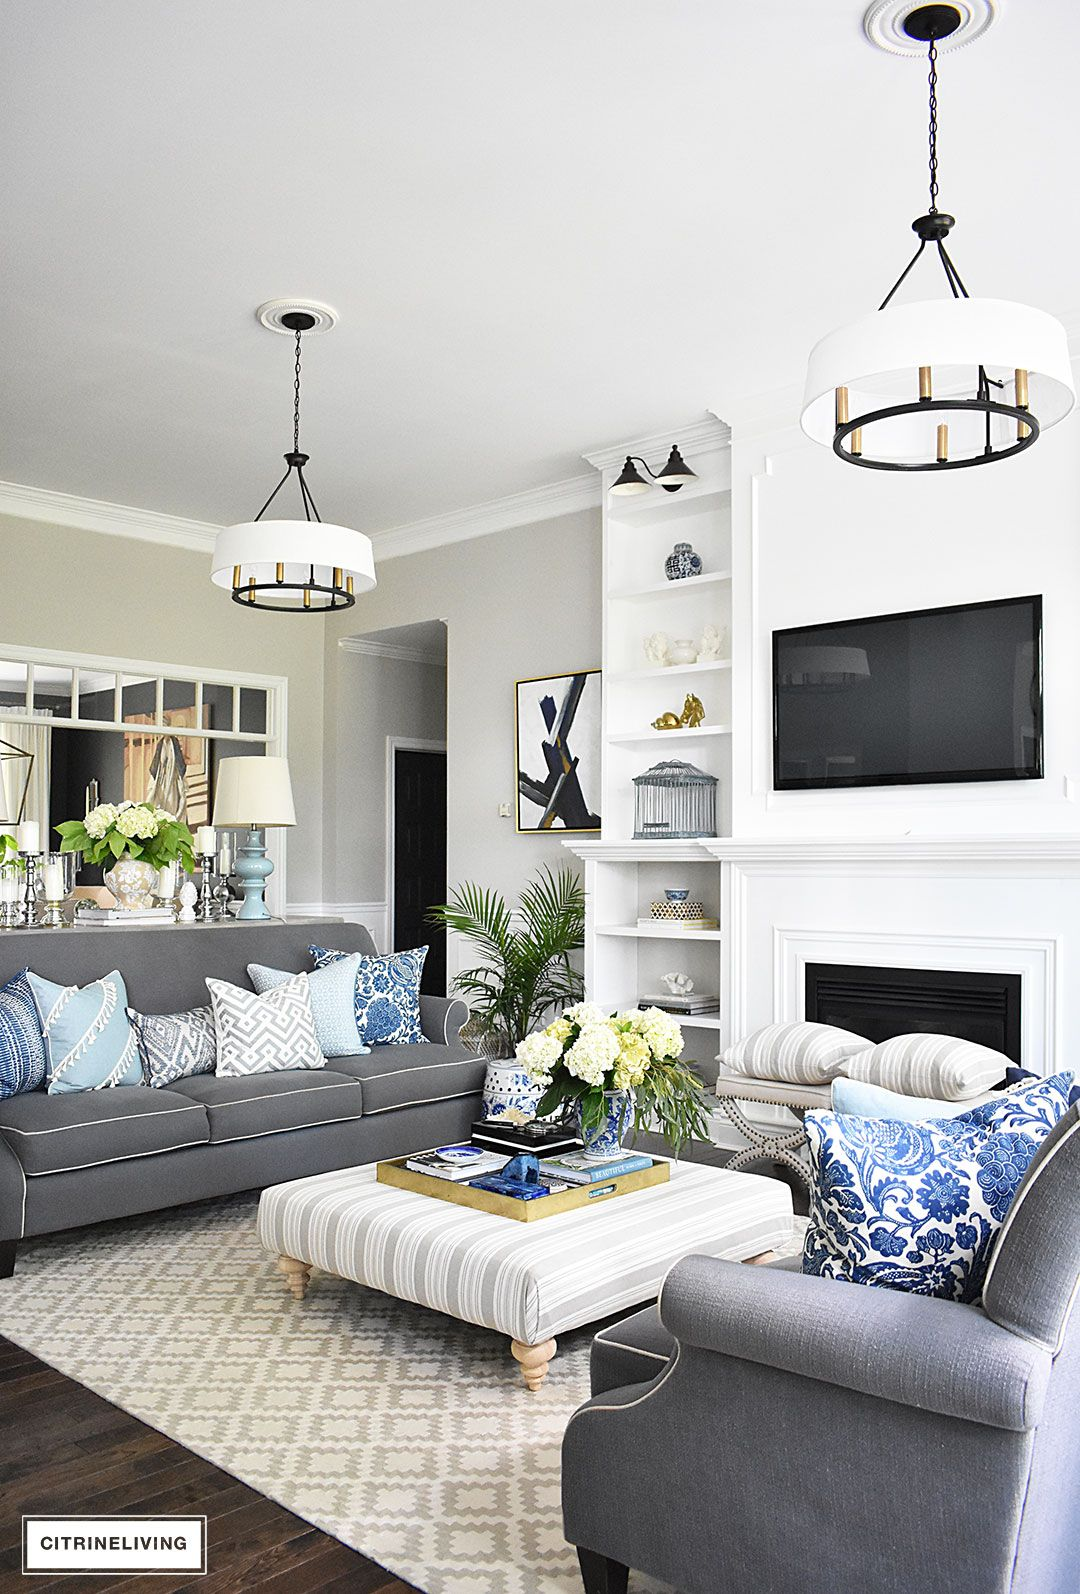 White And Grey Living Room Light Stand For 20 Fresh Ideas Decorating With Blue Using Decor Including Tips The Bedroom Kitchen Dining More